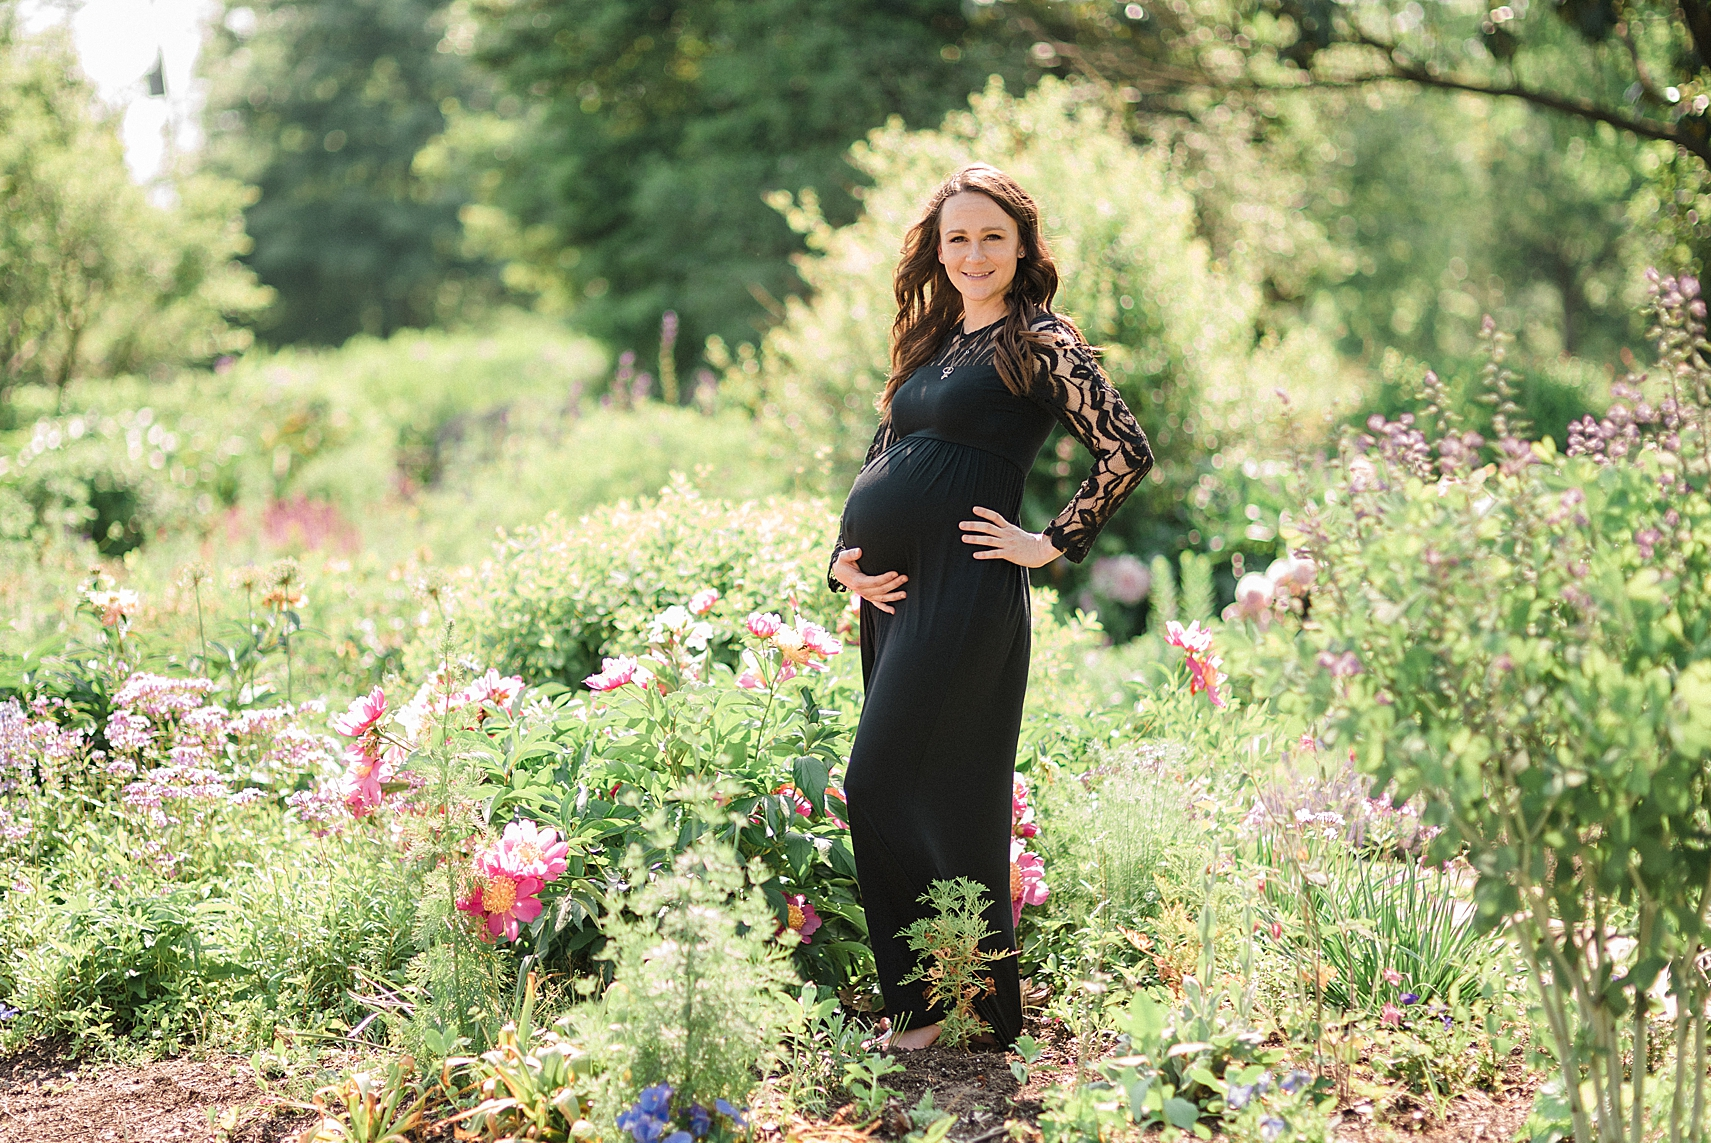 virginia maternity portrait photography ica images